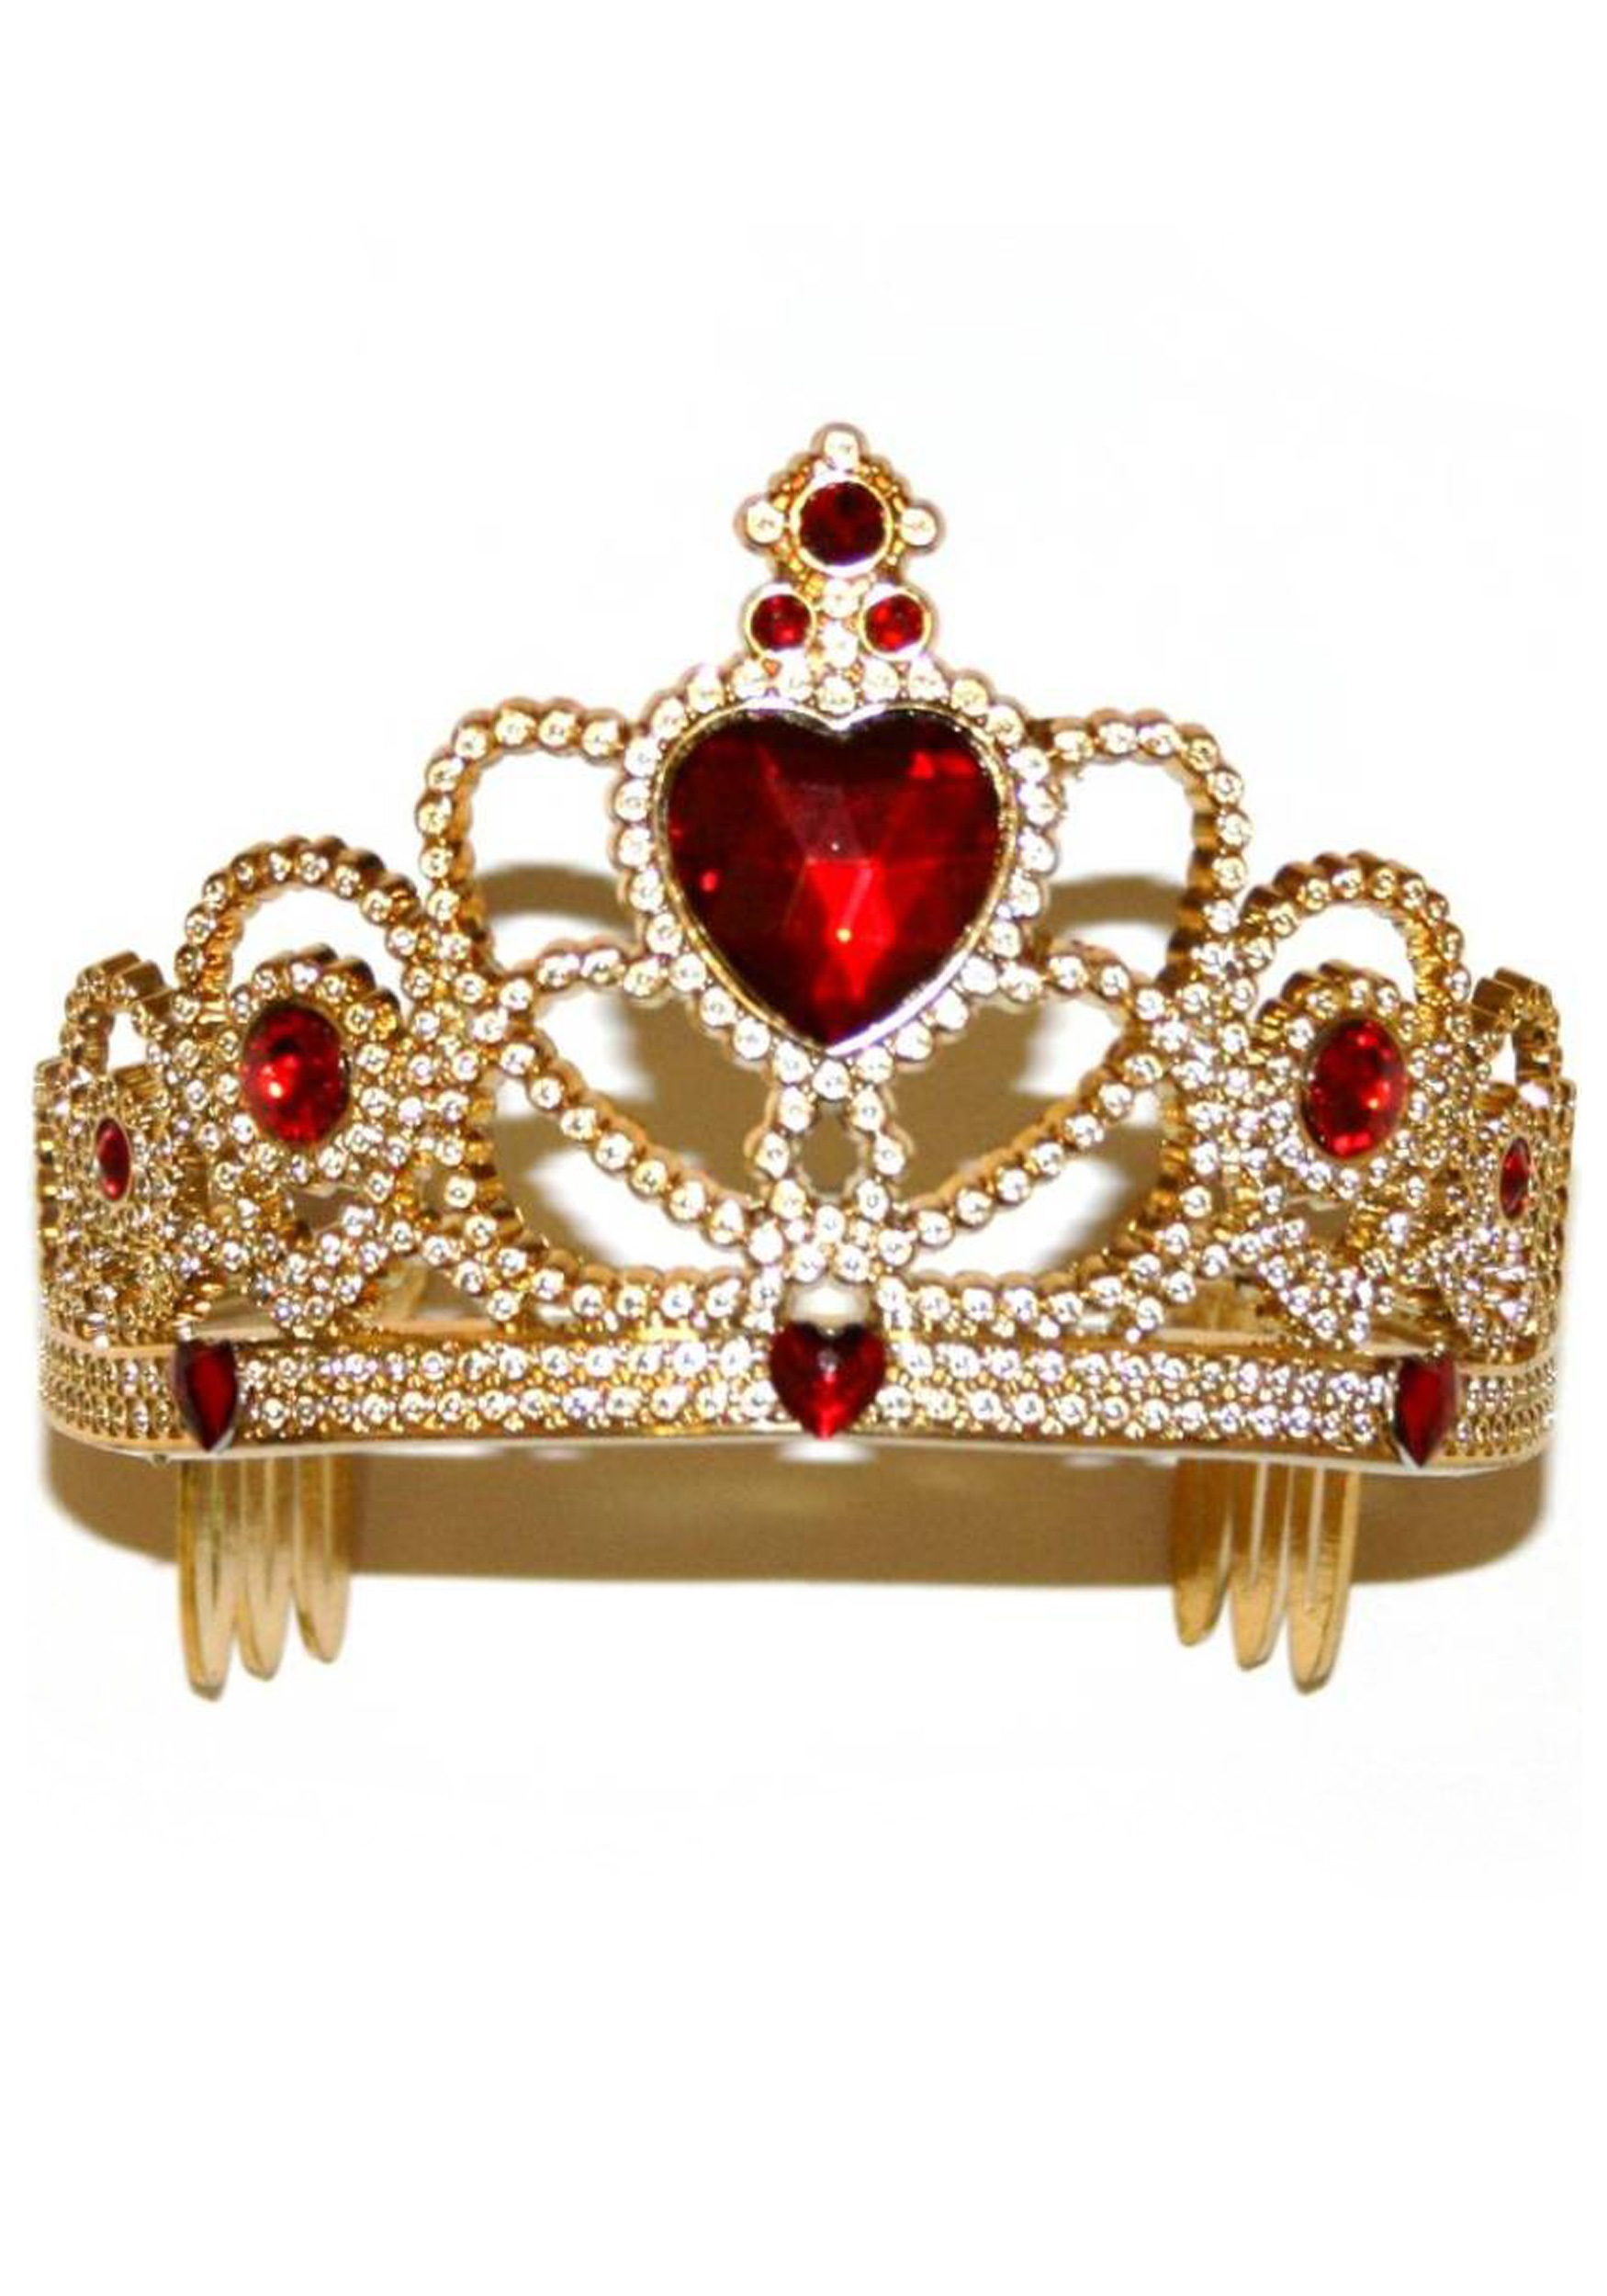 King Queen Crown Gold Silver Plastic Costume Accessories